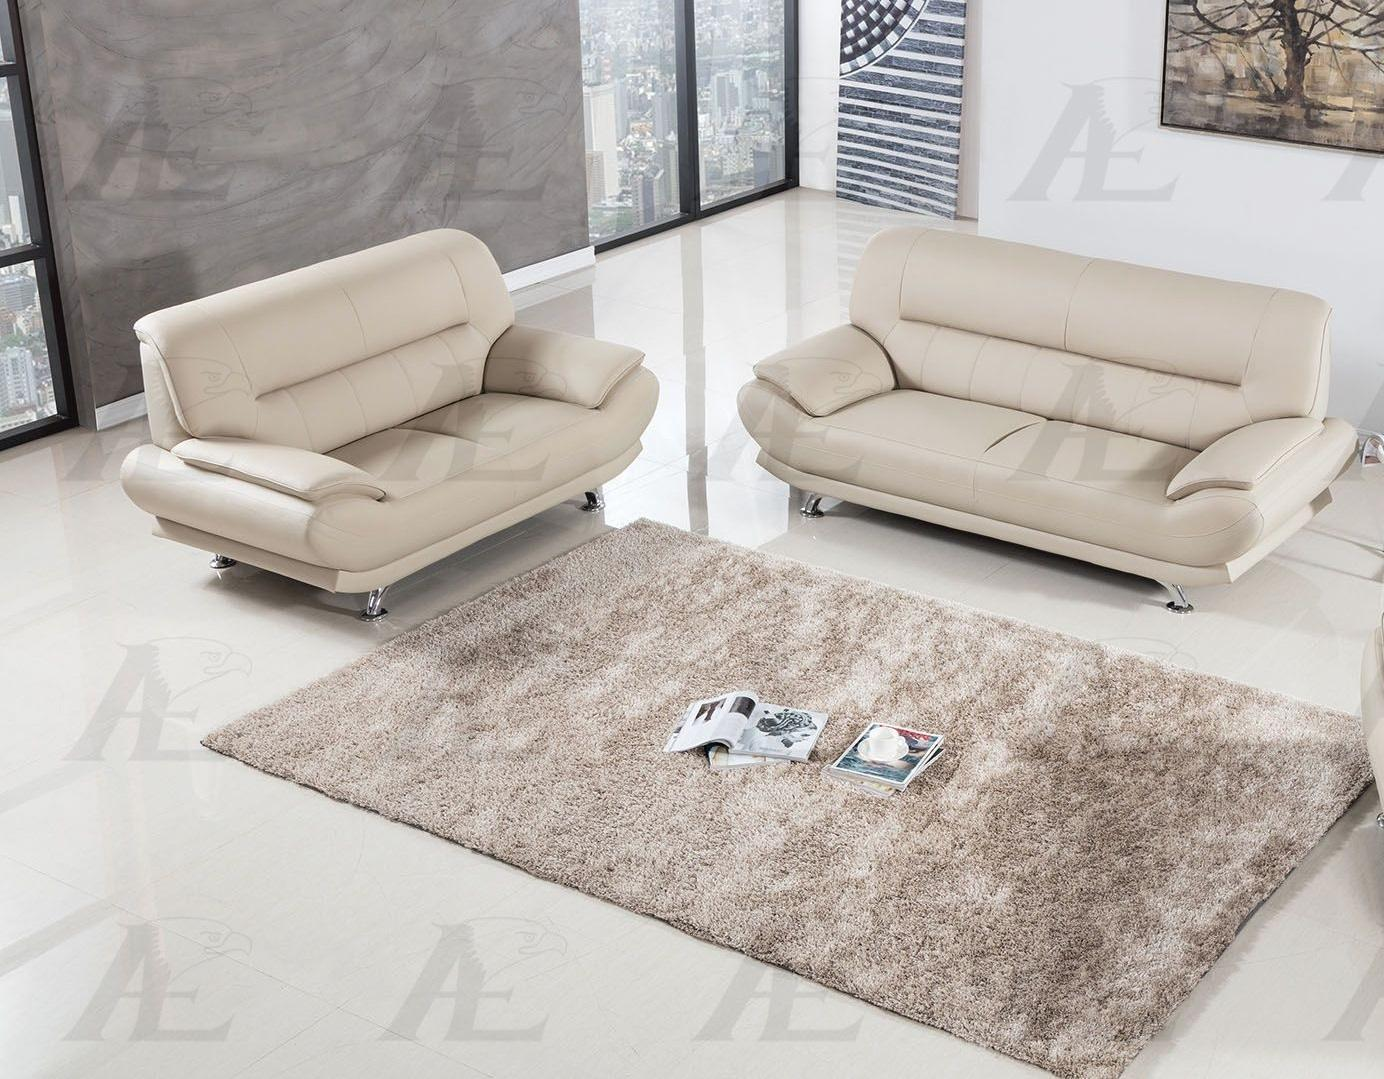 American Eagle AE-709 Cream Faux Leather Sofa Set 2pcs in Contemporary Style